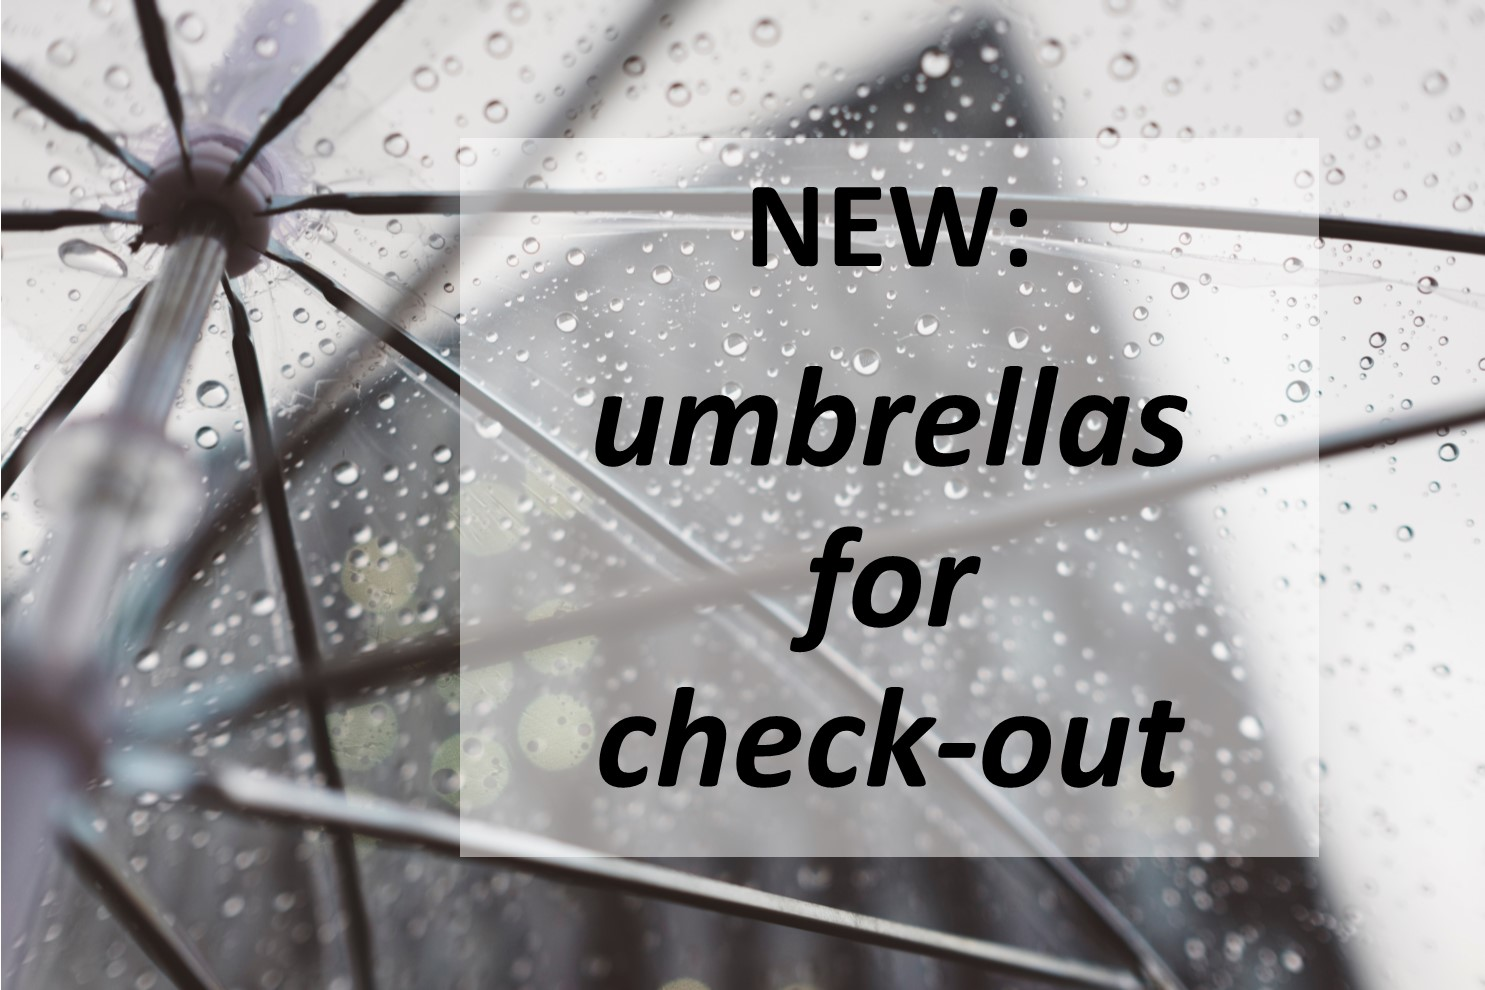 New: Umbrellas available for check-out